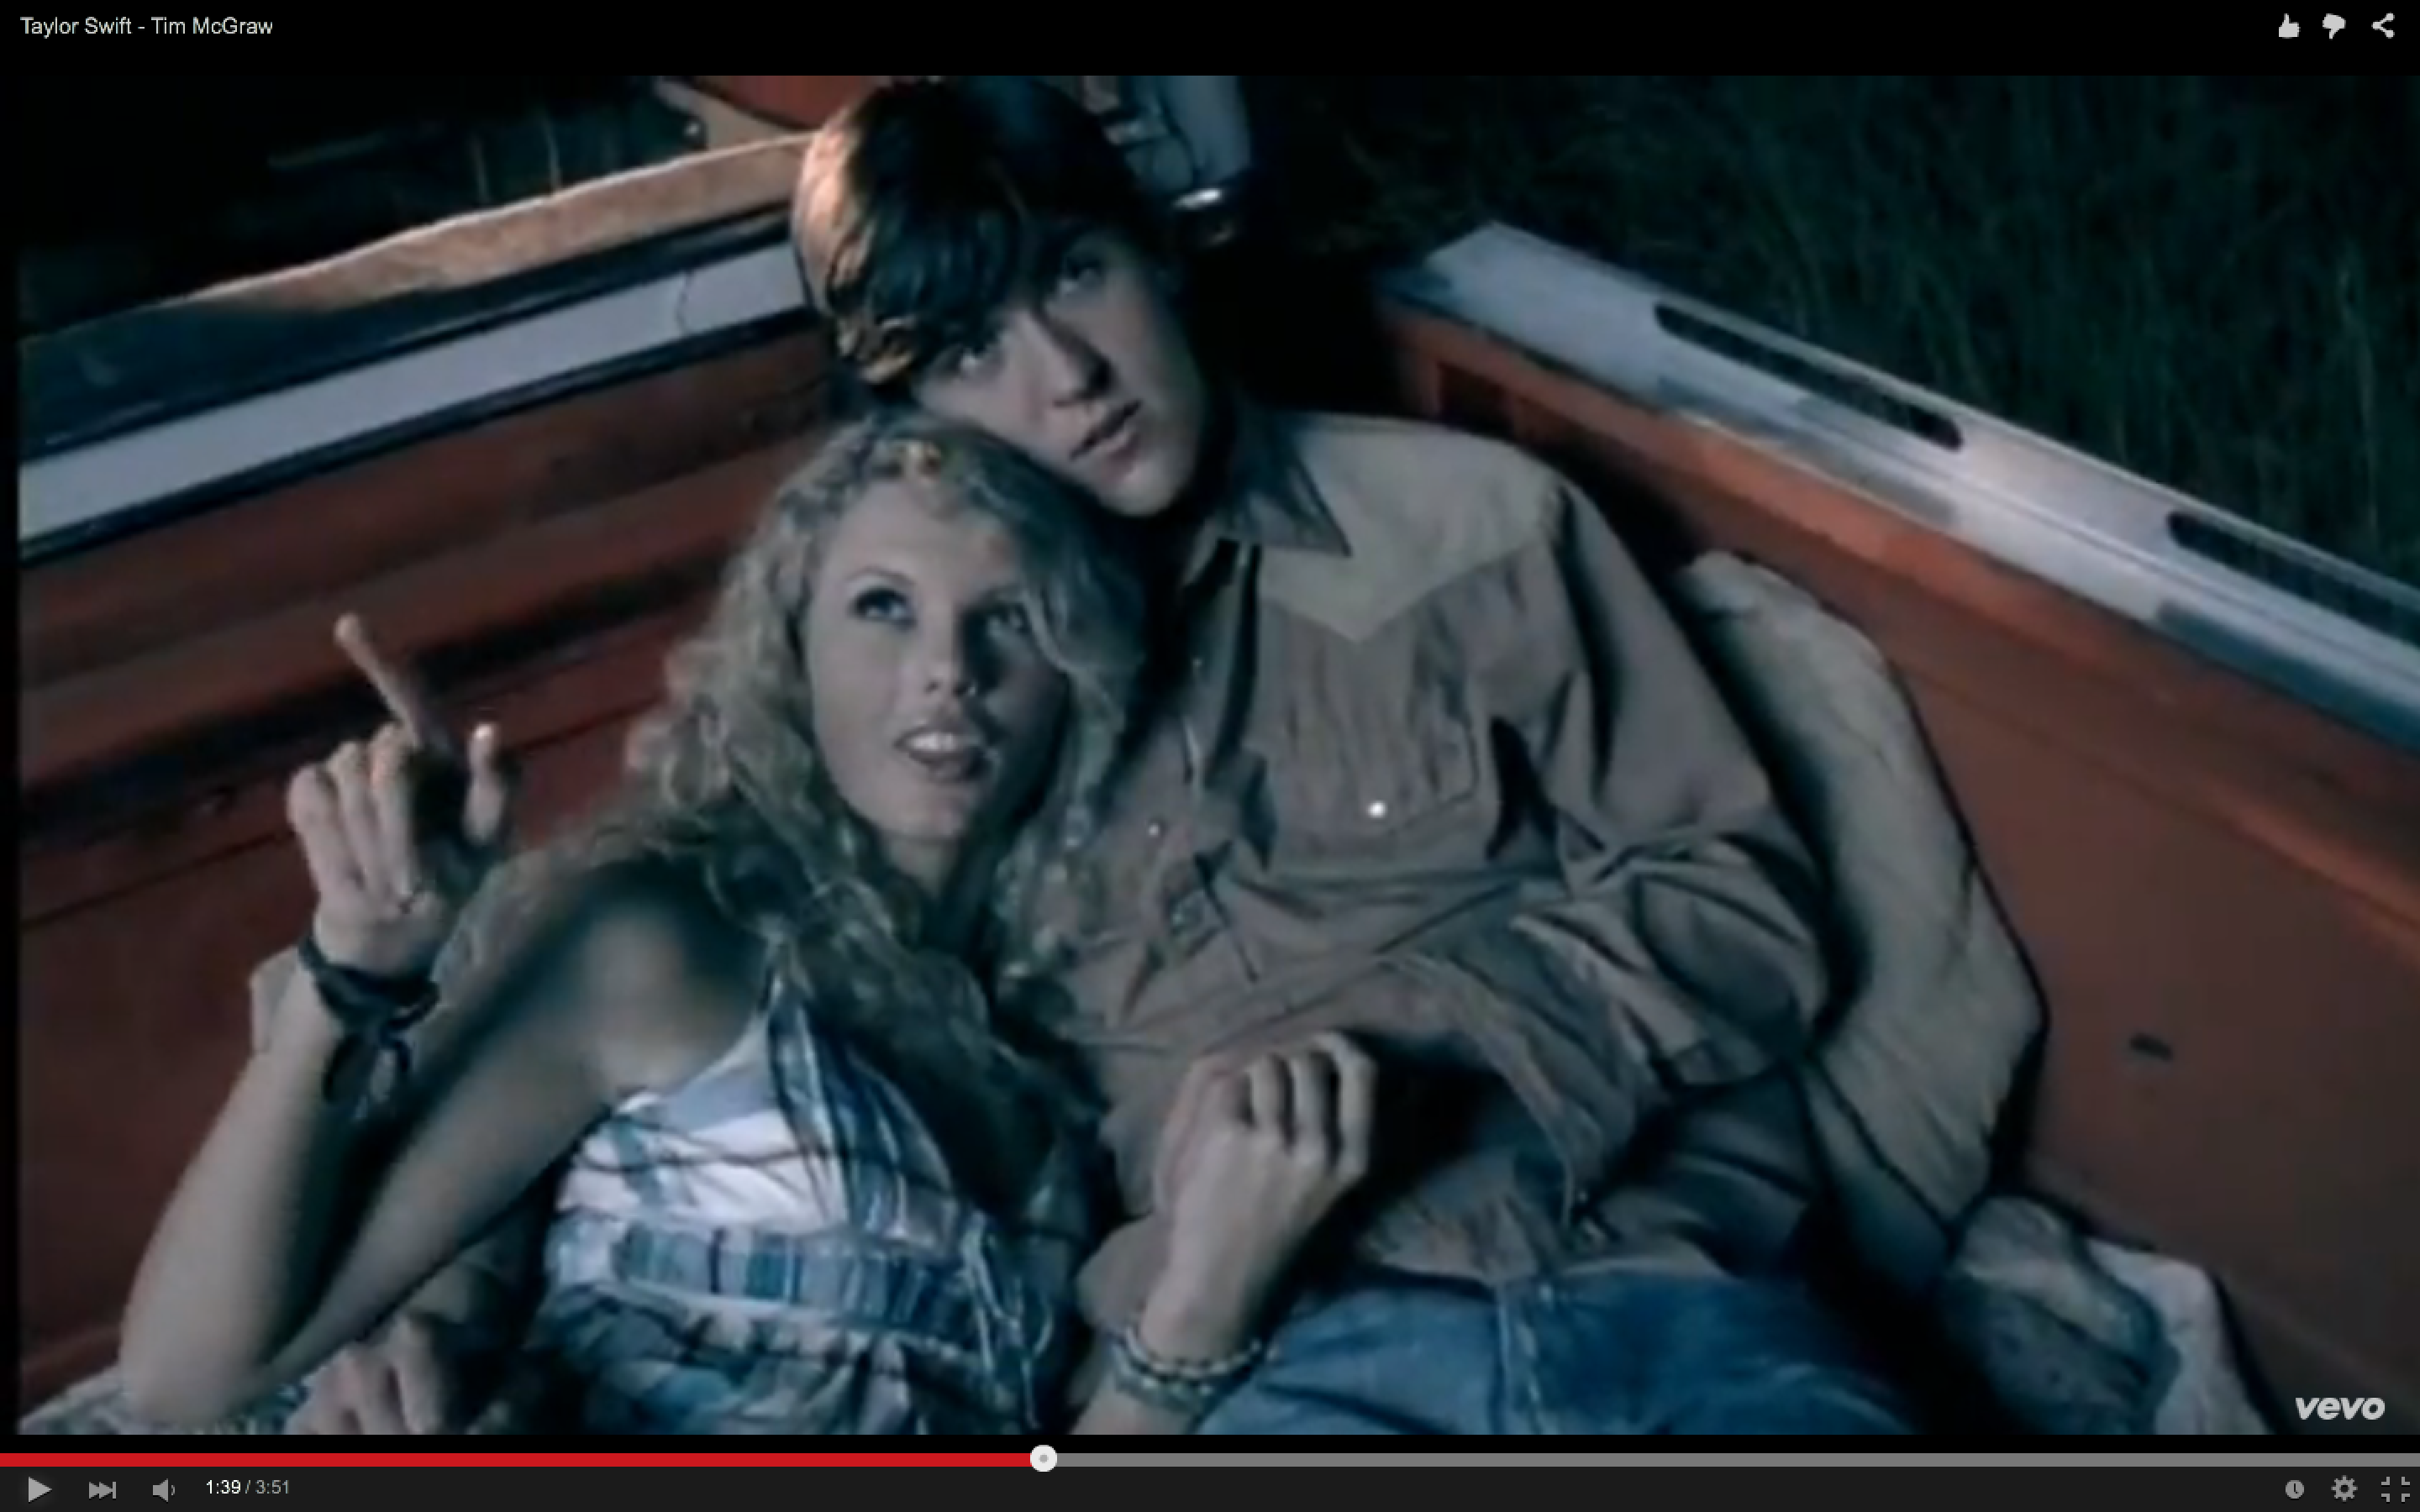 Flashback Taylor Swift Makes Big Country Debut With Tim Mcgraw Rolling Stone